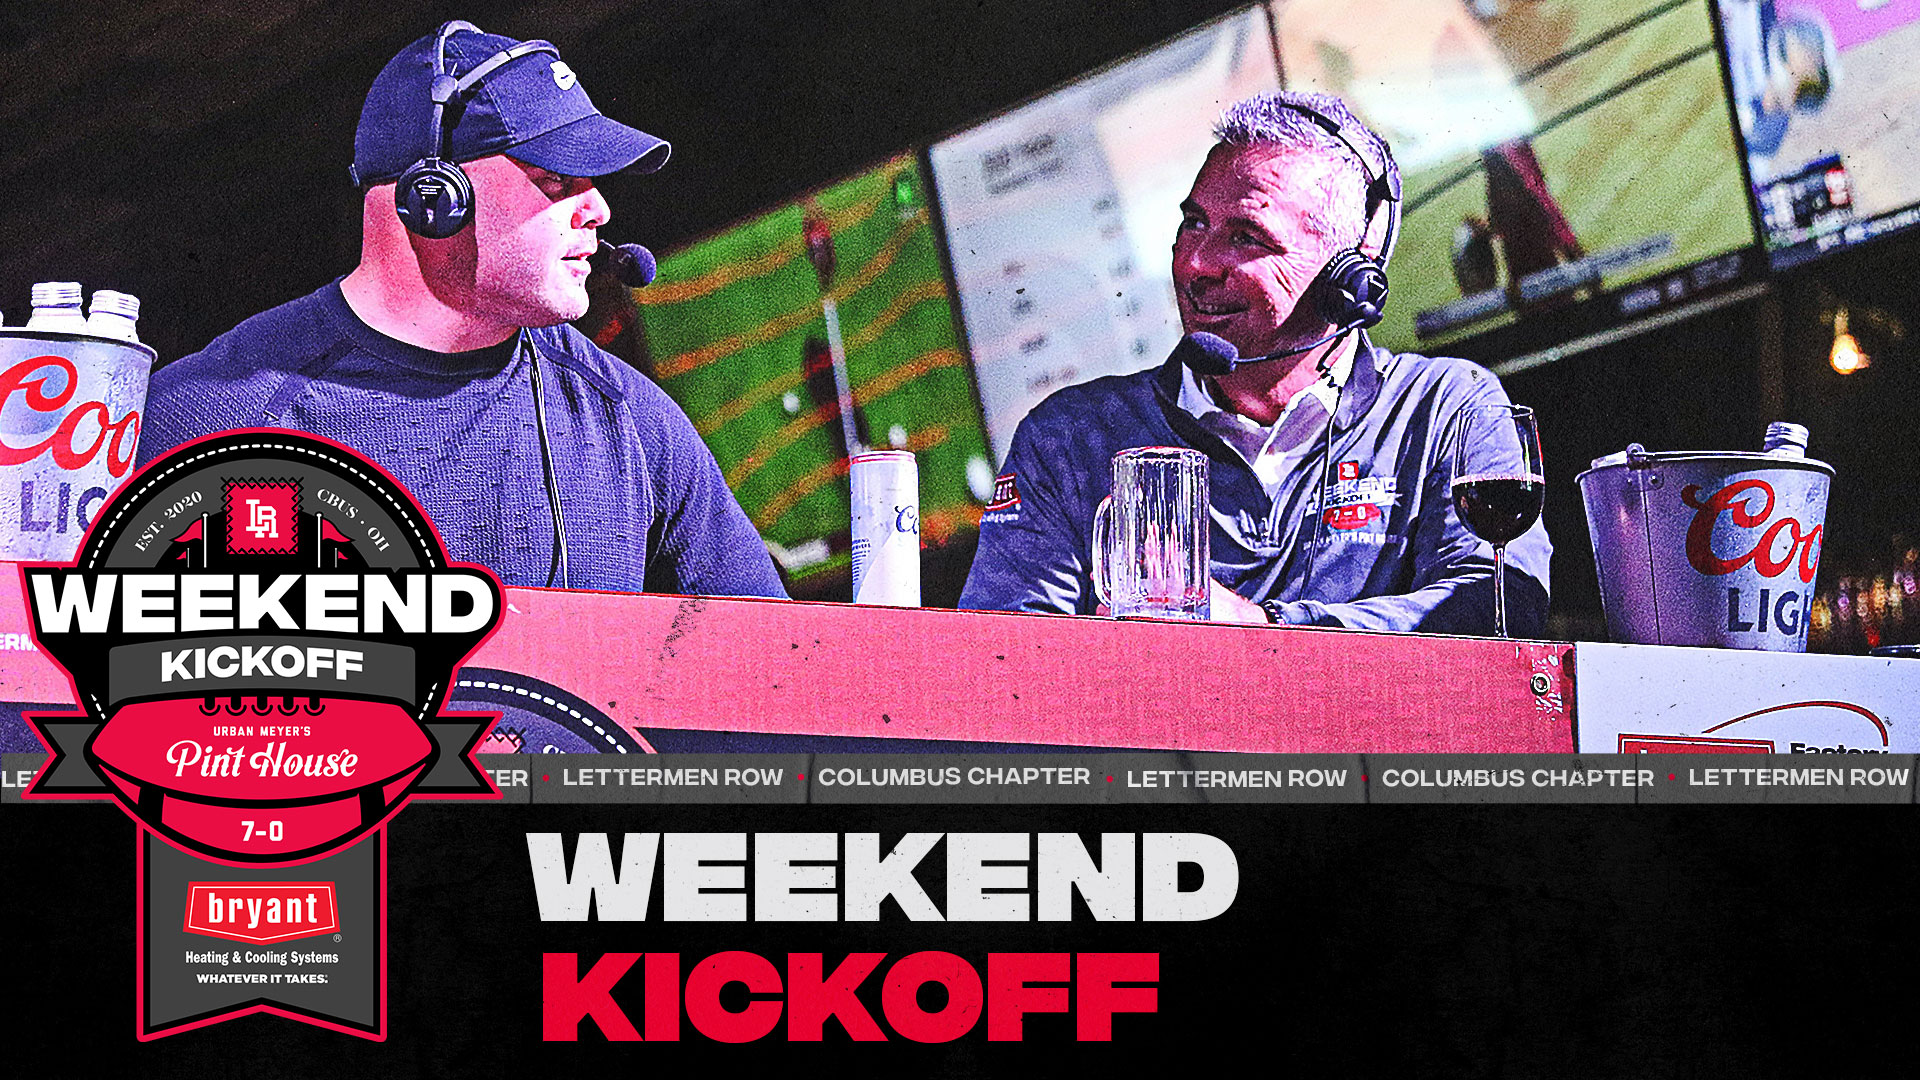 Weekend-Kickoff10-15-featured-image